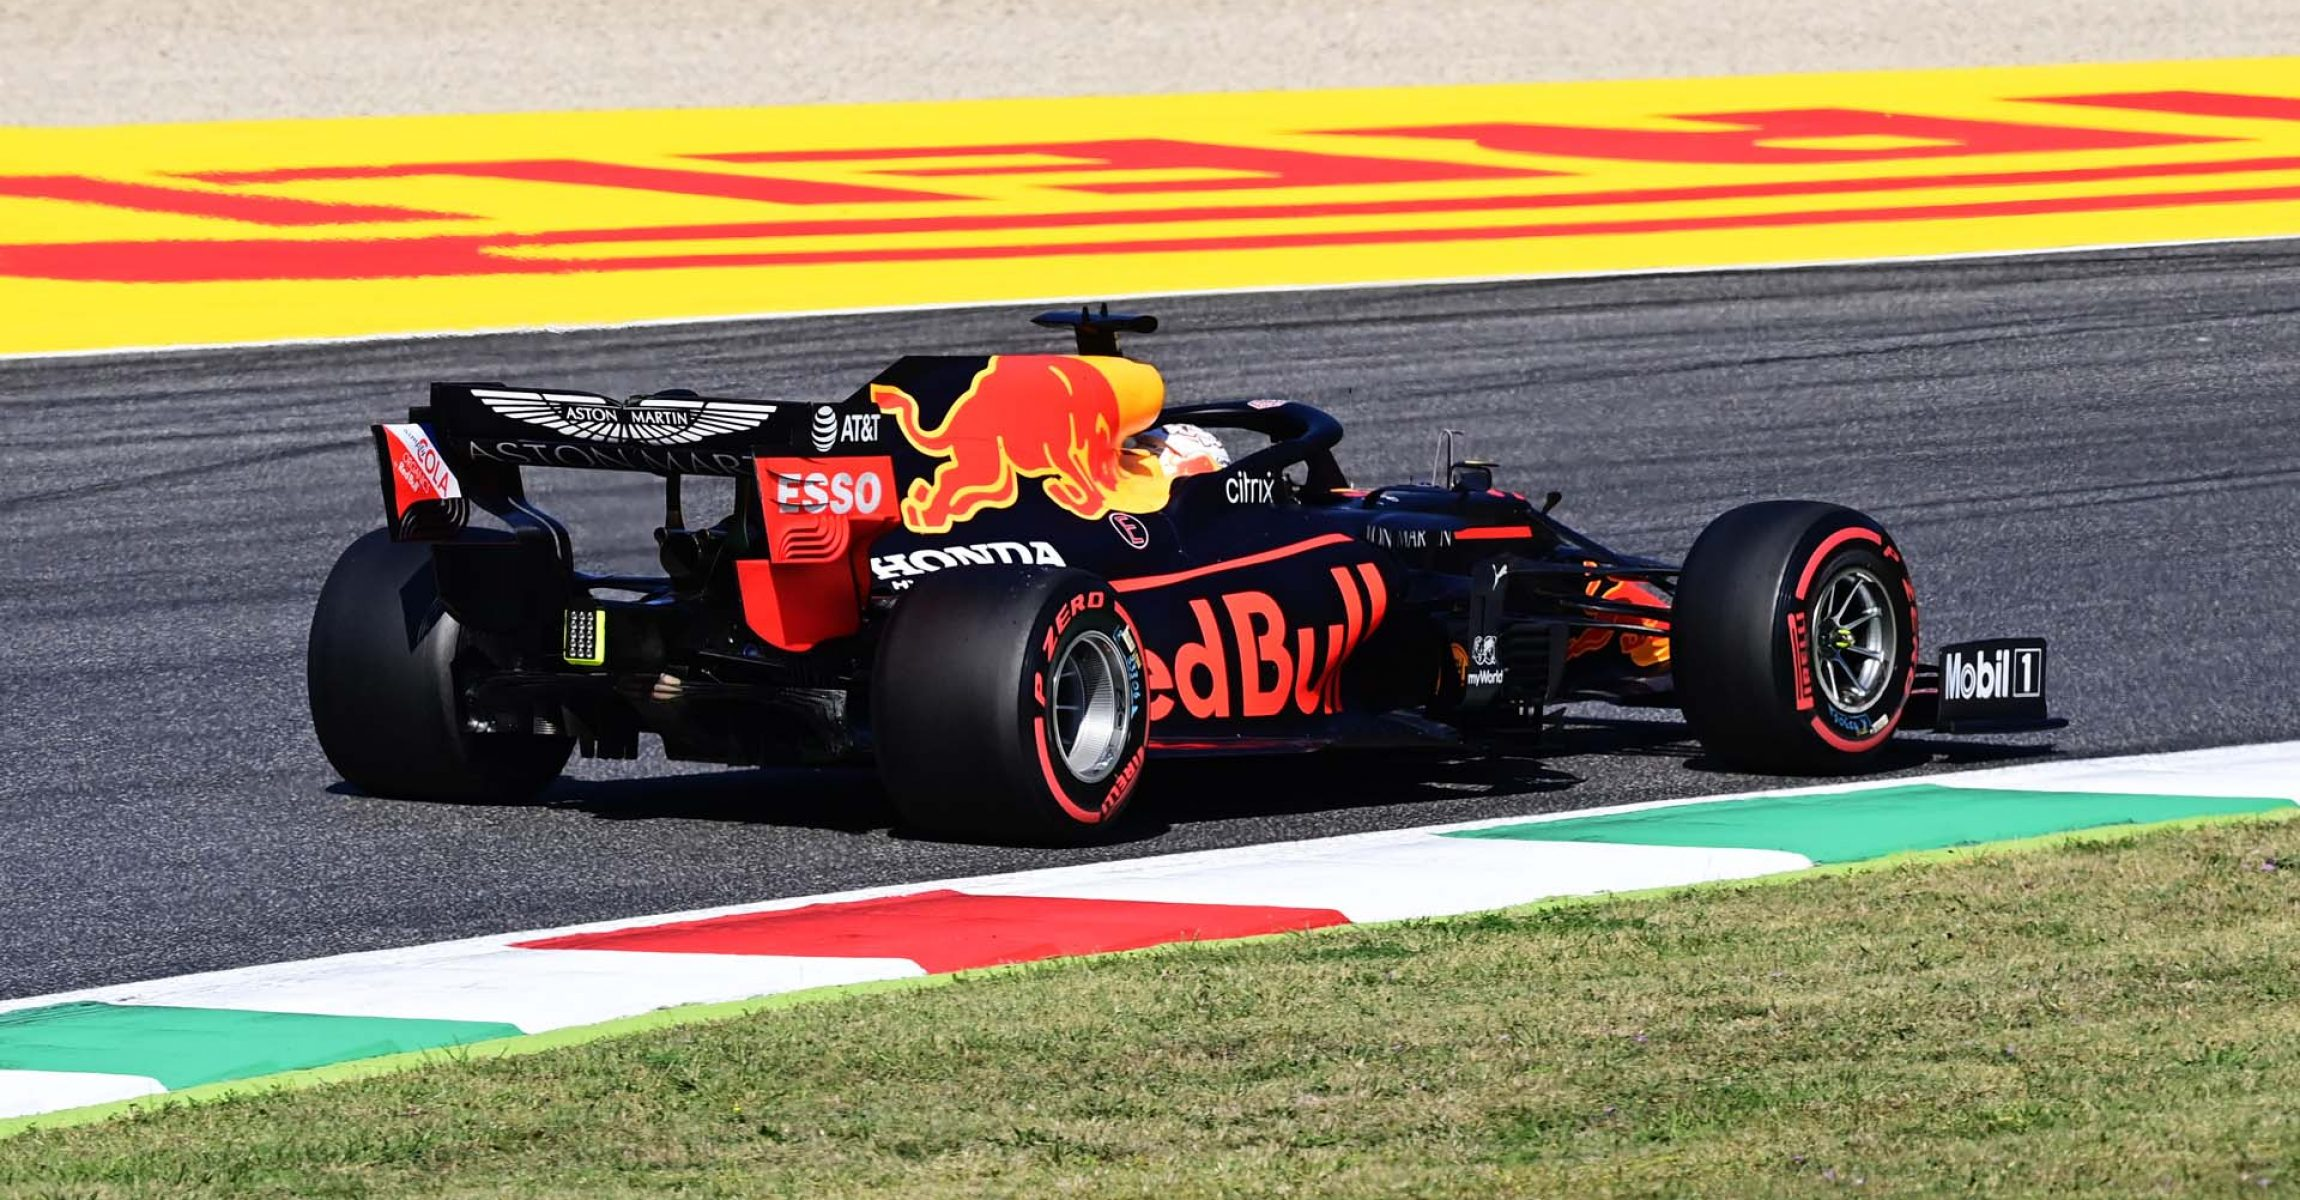 SCARPERIA, ITALY - SEPTEMBER 12: Max Verstappen of the Netherlands driving the (33) Aston Martin Red Bull Racing RB16 on track during qualifying for the F1 Grand Prix of Tuscany at Mugello Circuit on September 12, 2020 in Scarperia, Italy. (Photo by Miguel Medina - Pool/Getty Images)